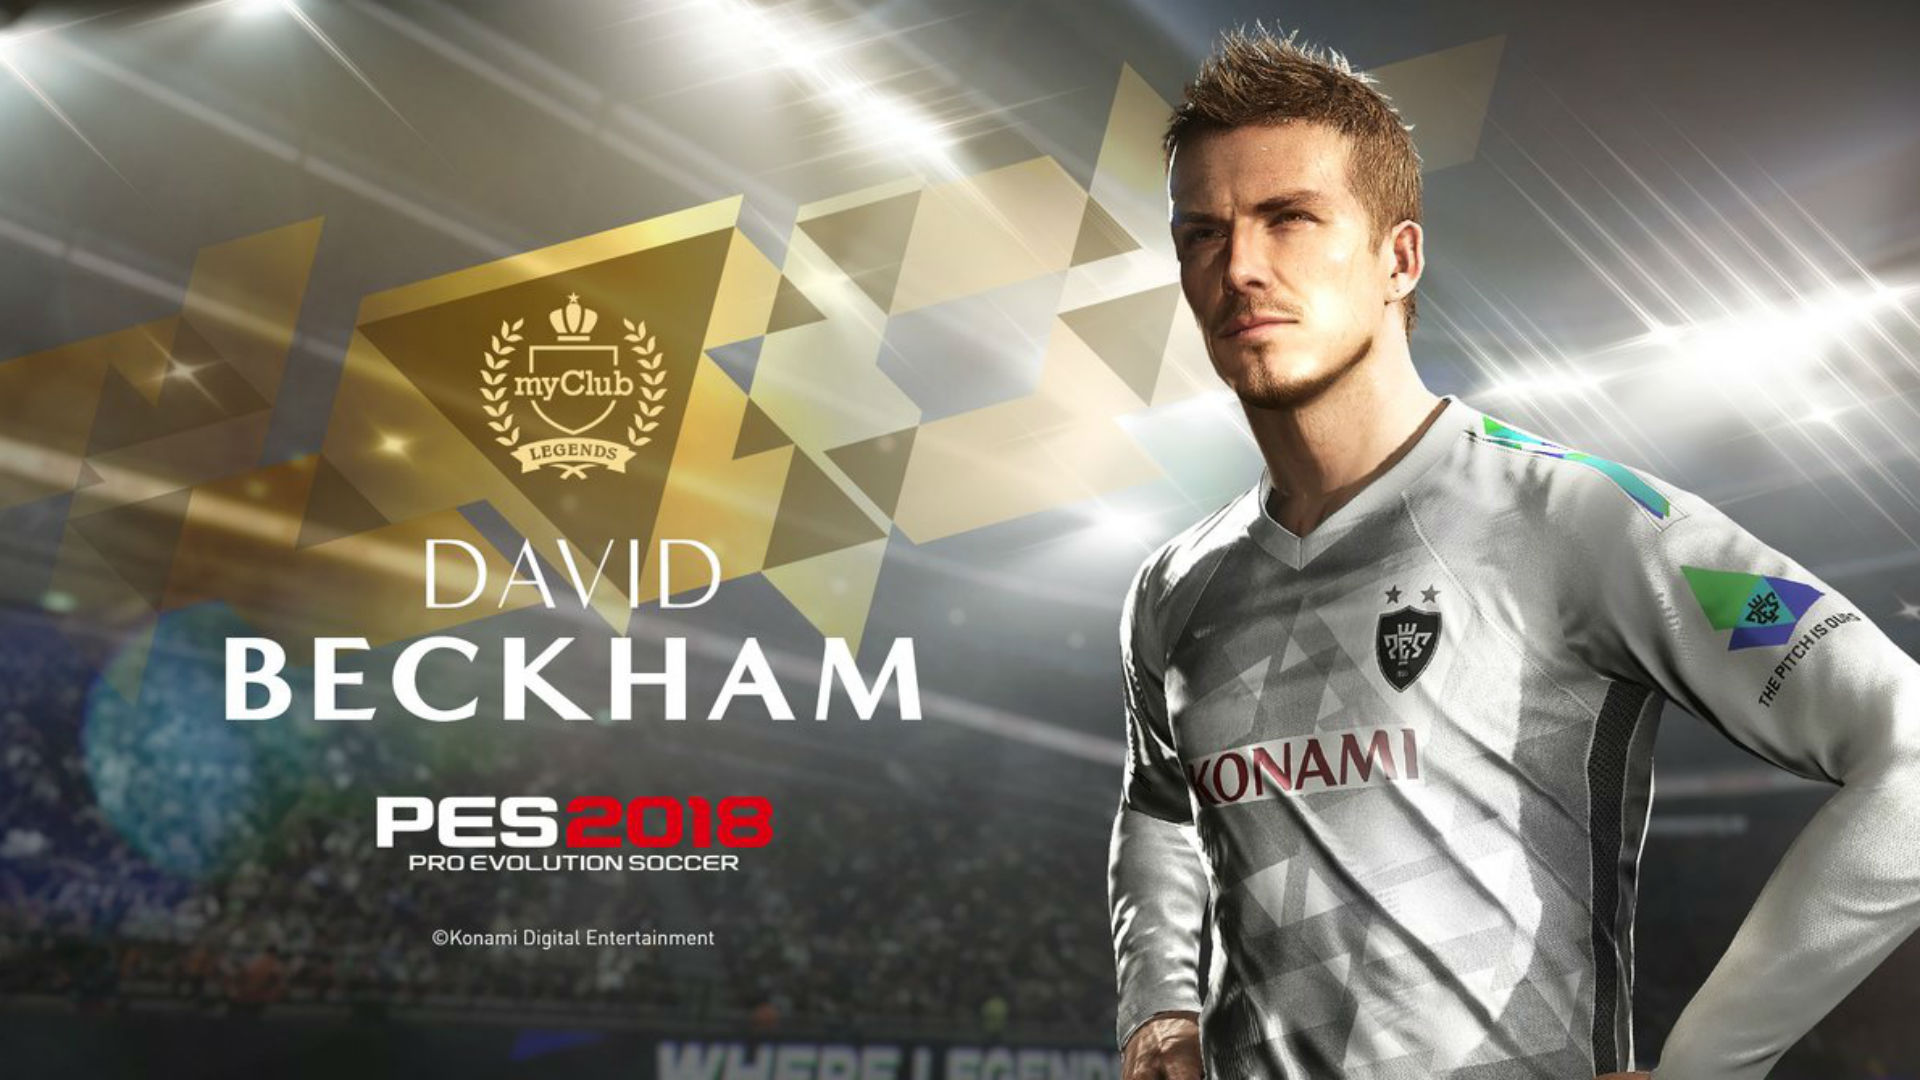 David Beckham in PES 2018: All you need to know | Goal com